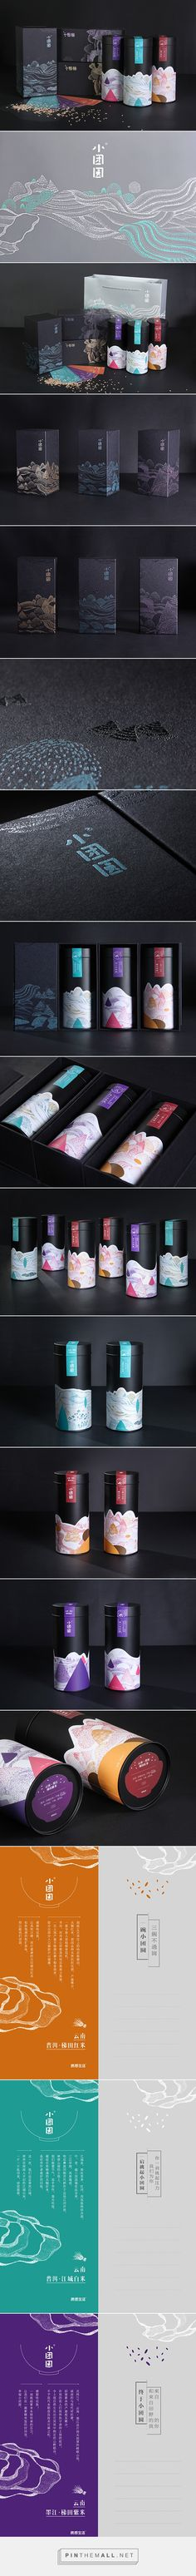 xiaotuanyuan on Behance designed by Yi Mi Xiaoxin curated by Packaging Diva PD. Lovely tea packaging.